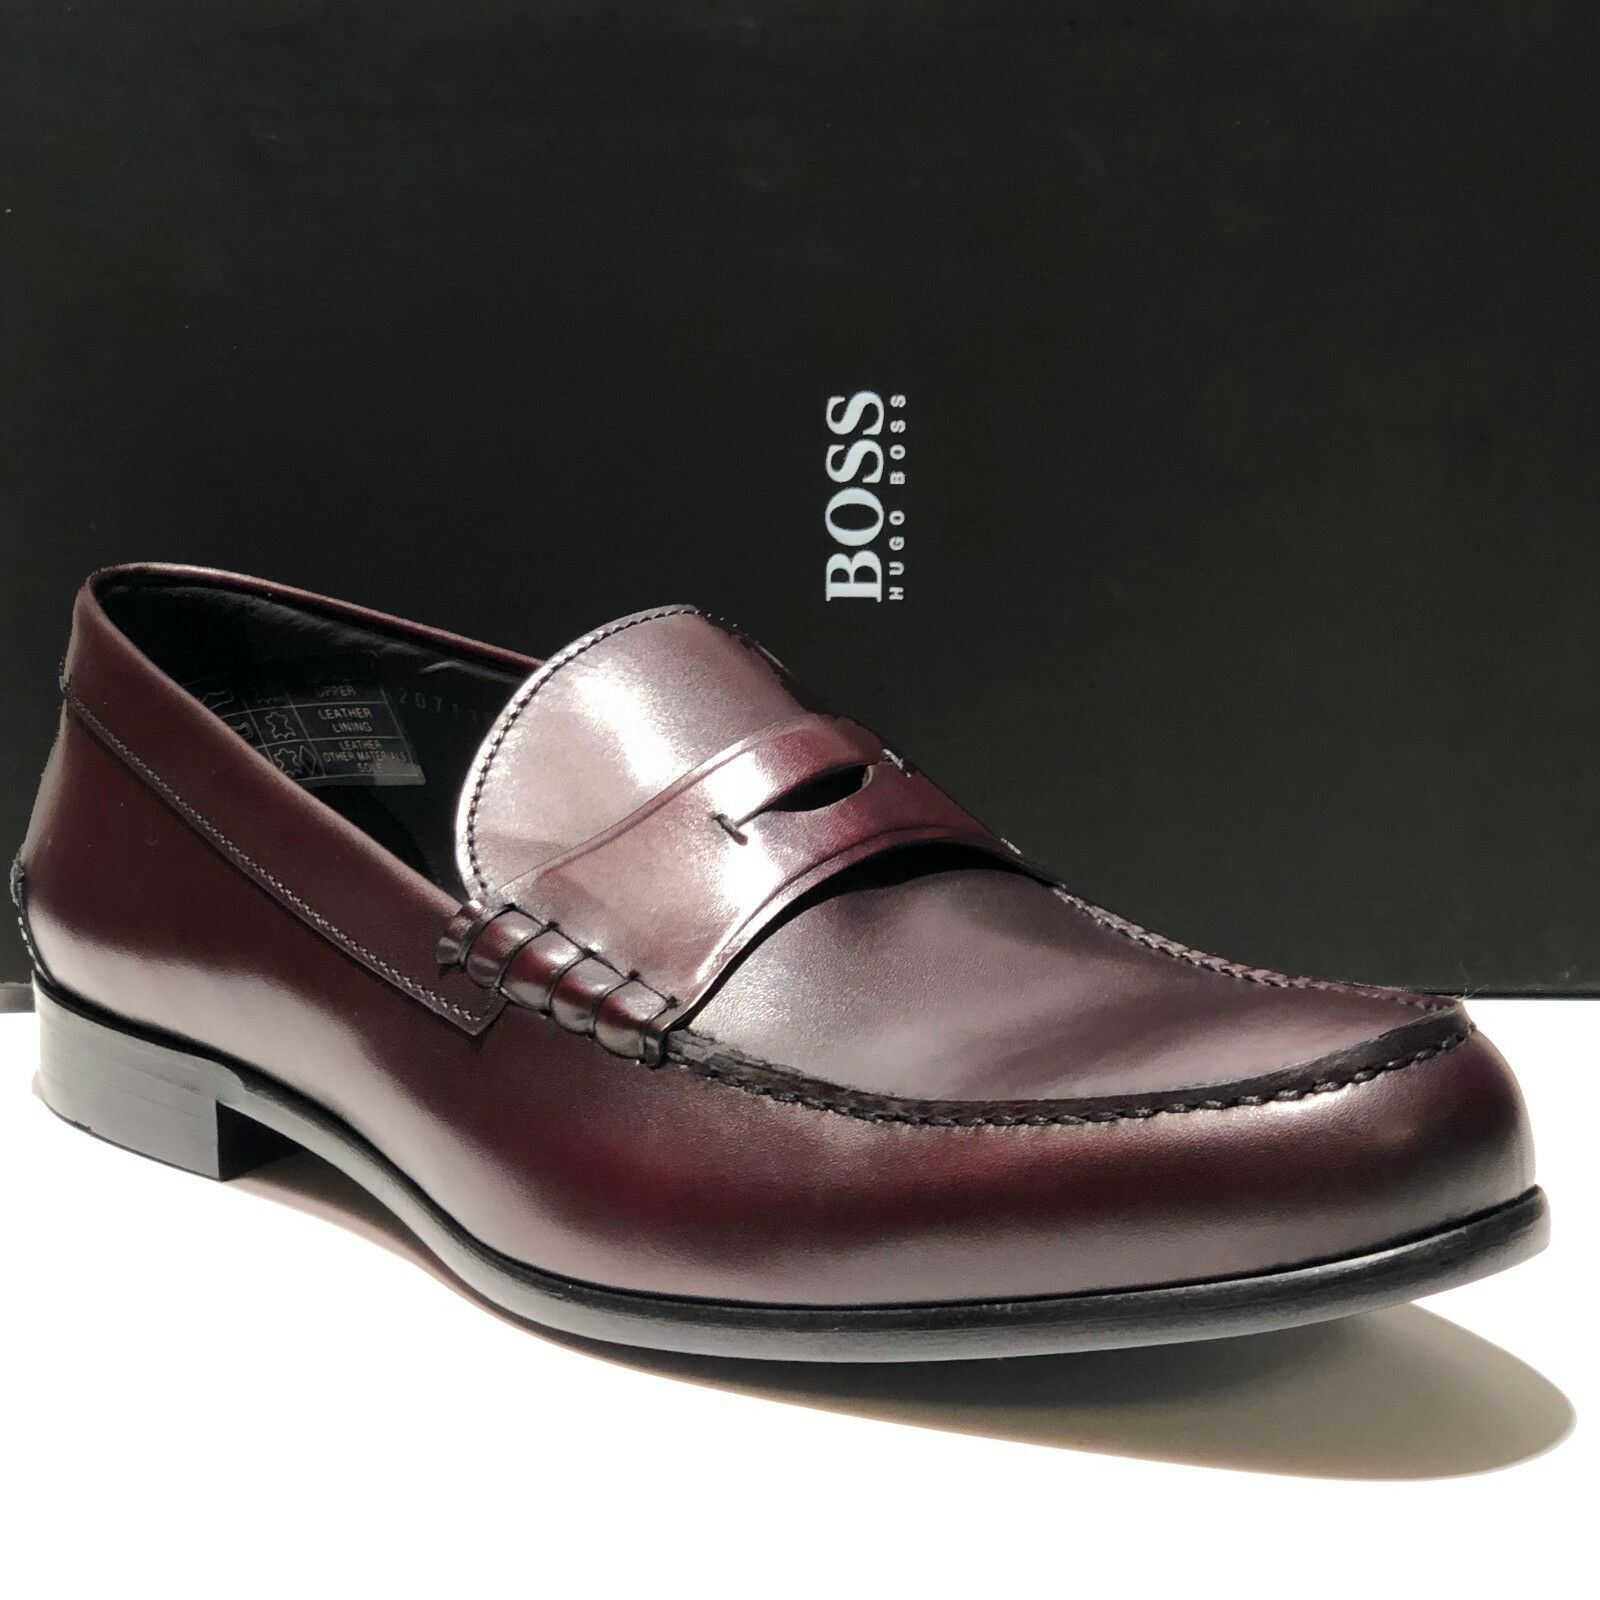 Hugo Boss ITALY Marronee rosso Leather Penny Loafers Dress scarpe Men's Fashion Casual